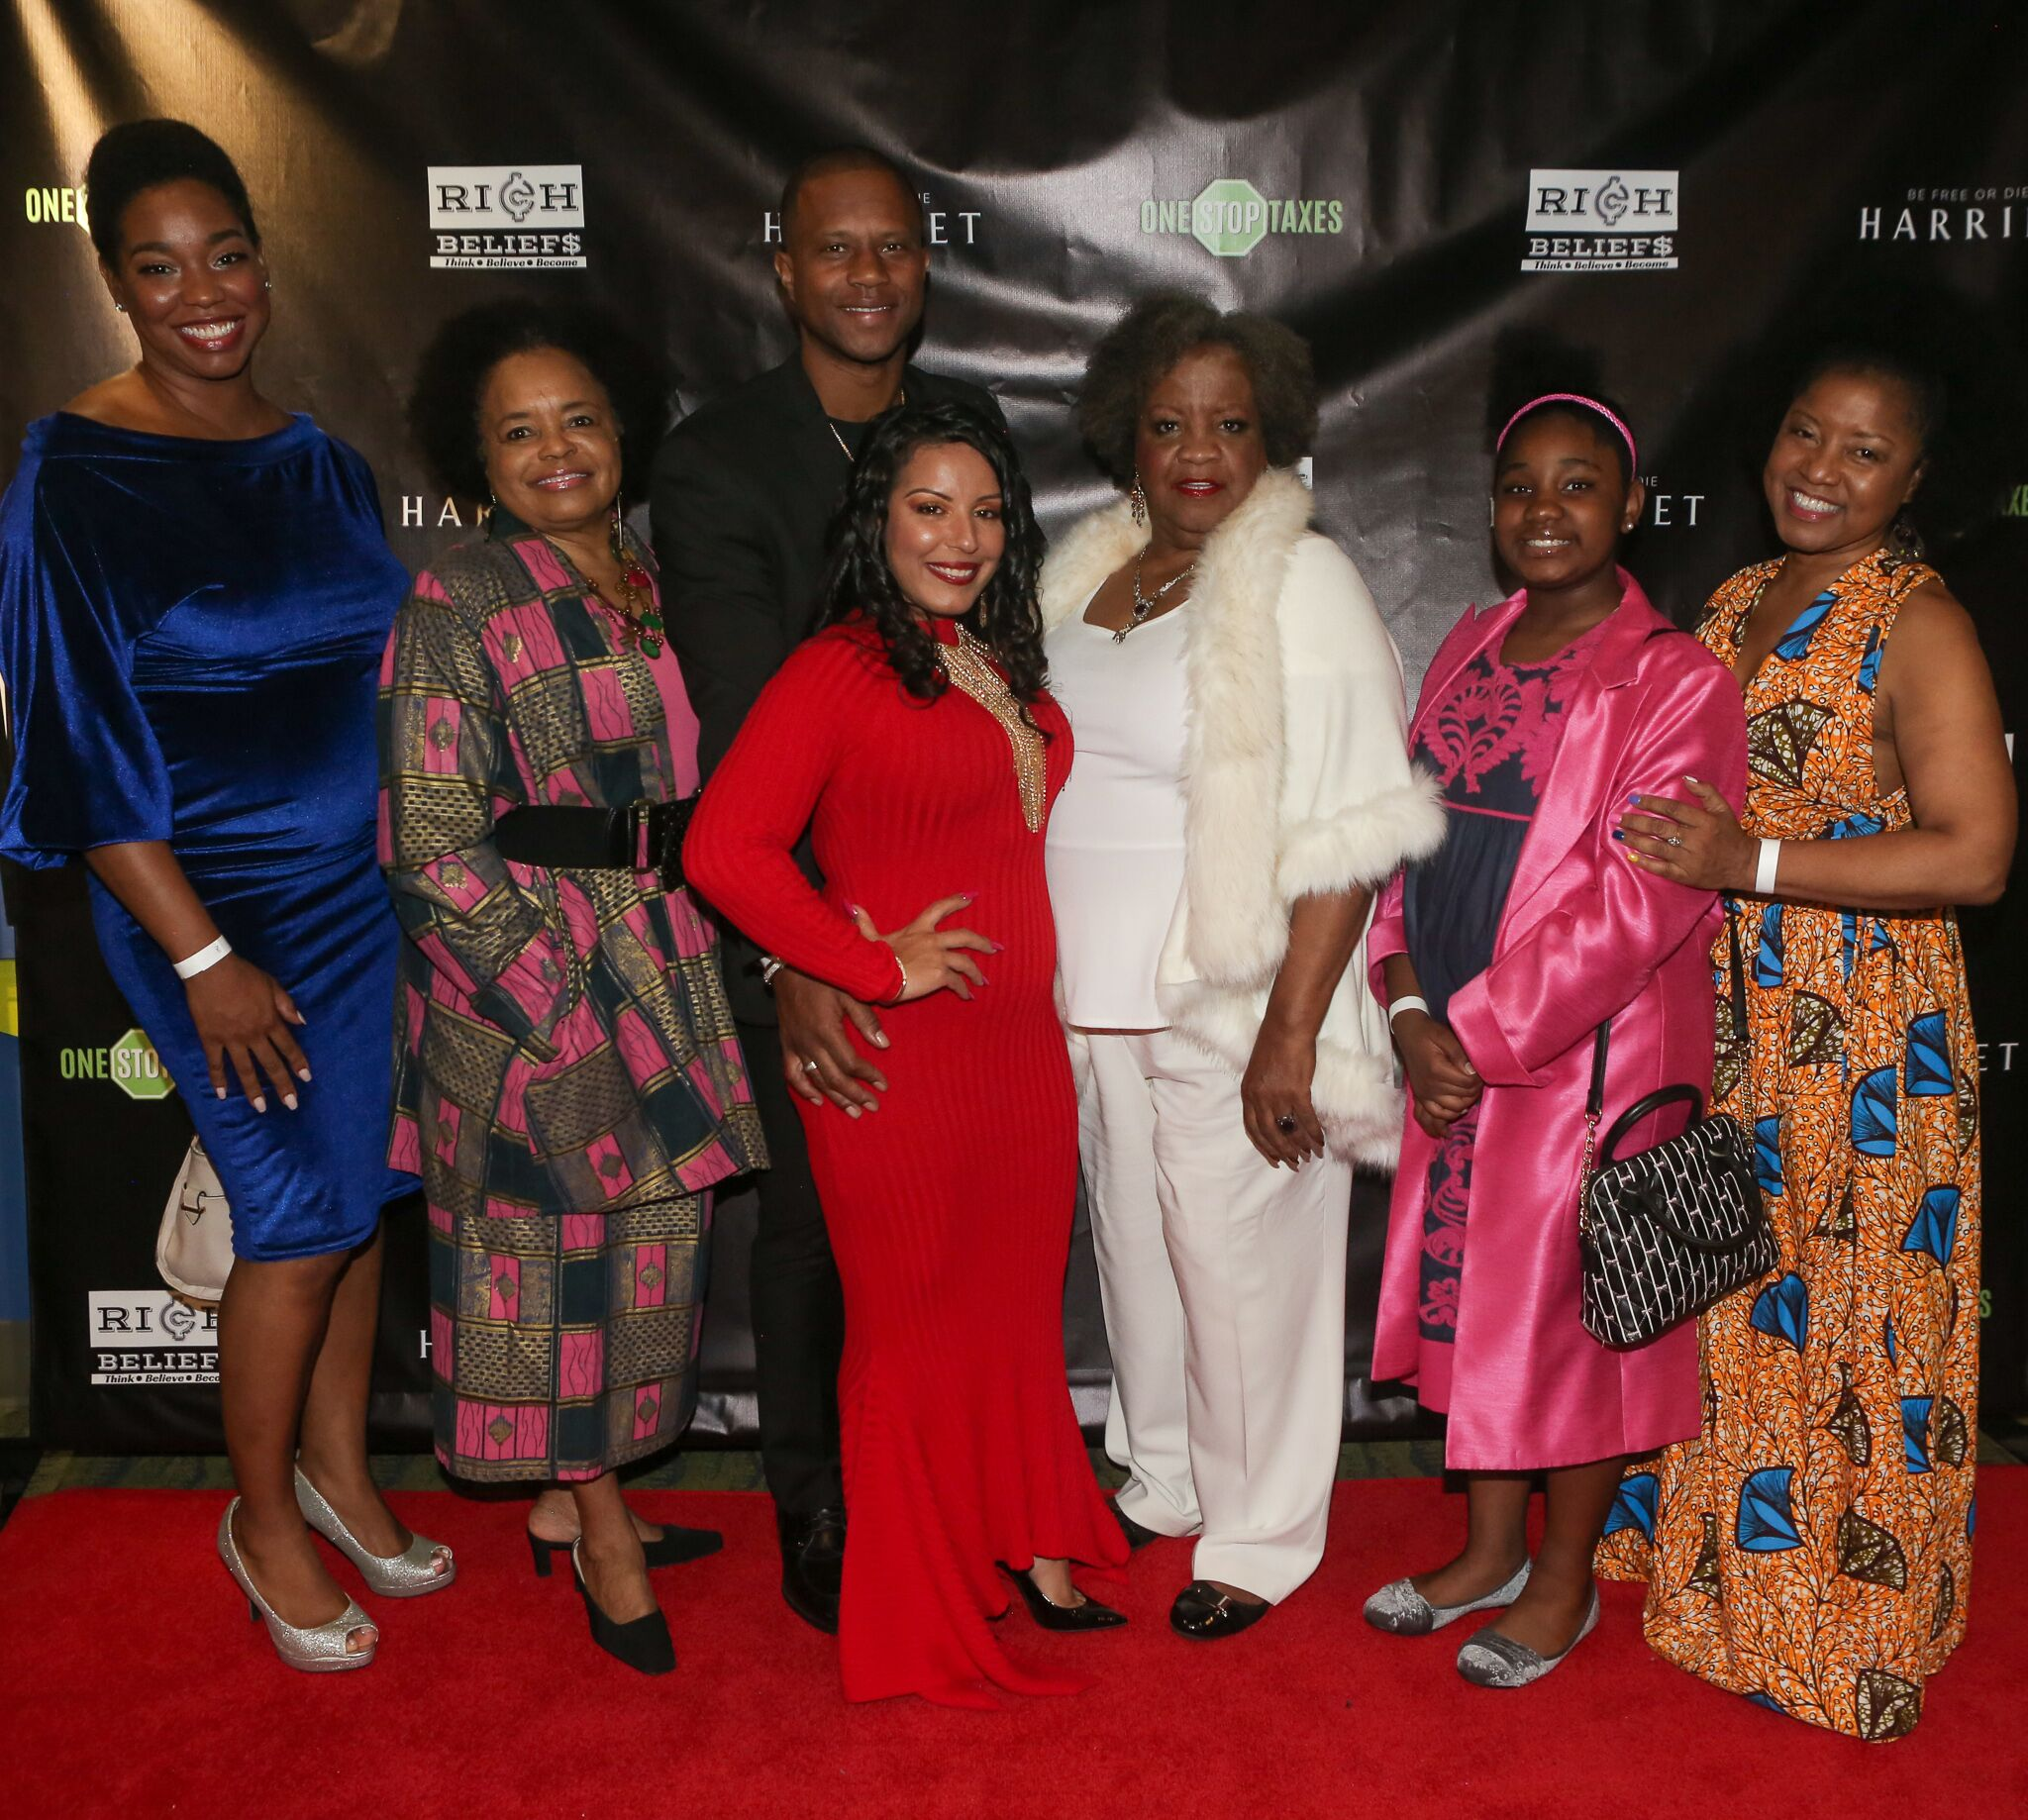 """Bill Duke, Les Brown, Elizabeth Omilami and more attend ONE STOP Taxes Exclusive Red Carpet Premiere of """"Harriet"""""""